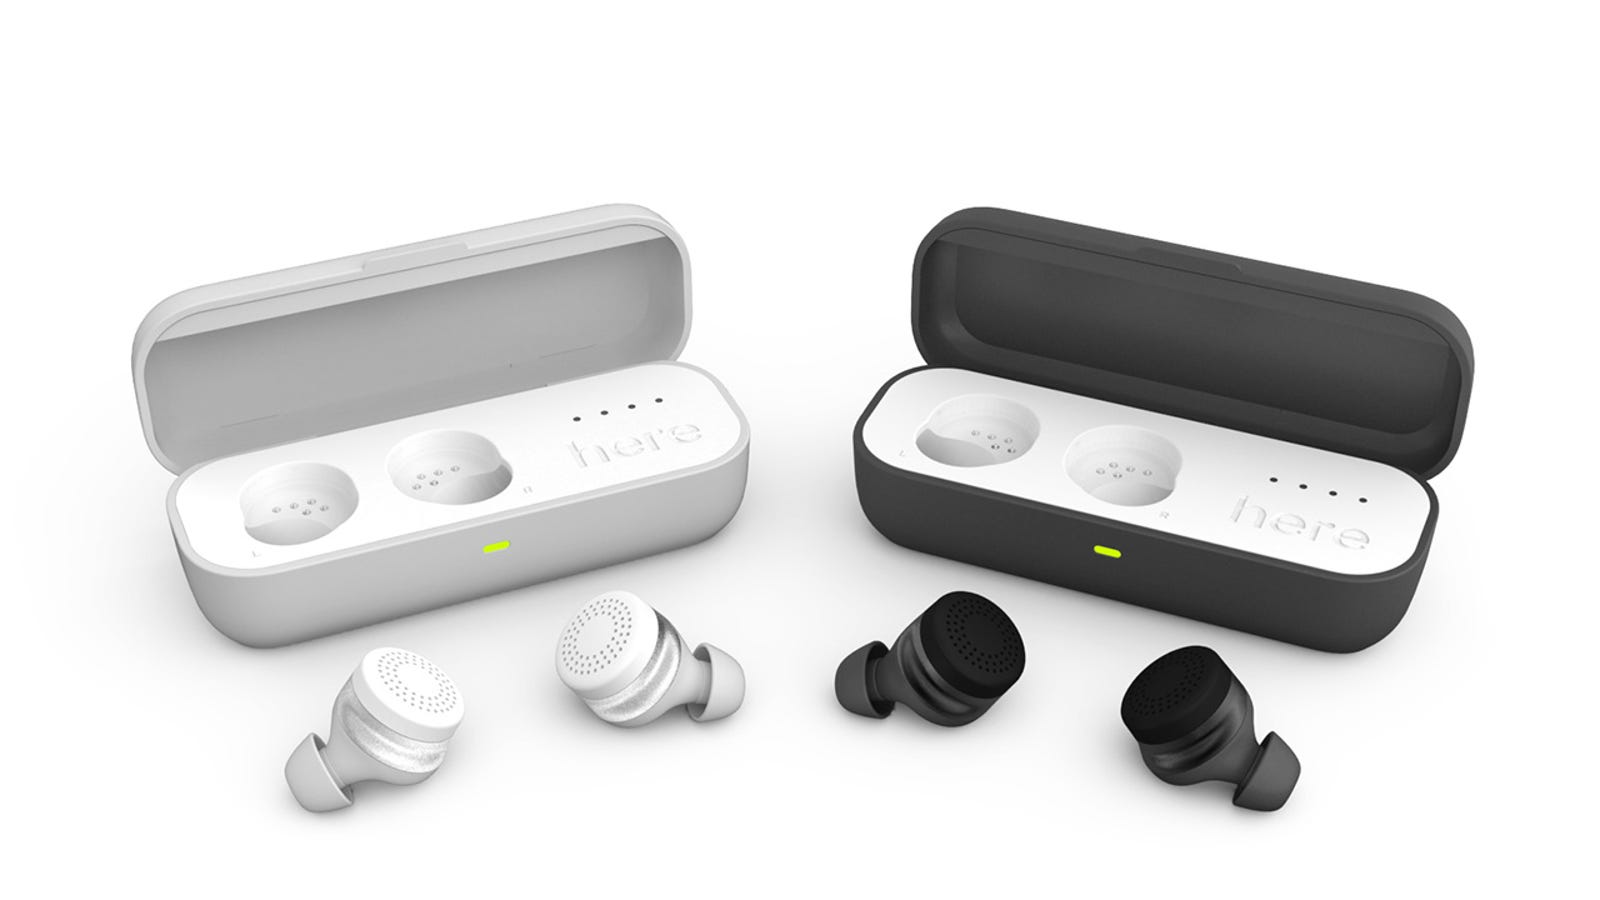 green beats headphones wireless - Bionic Earbuds Are Like a Smartphone You Can Leave in Your Ears Forever